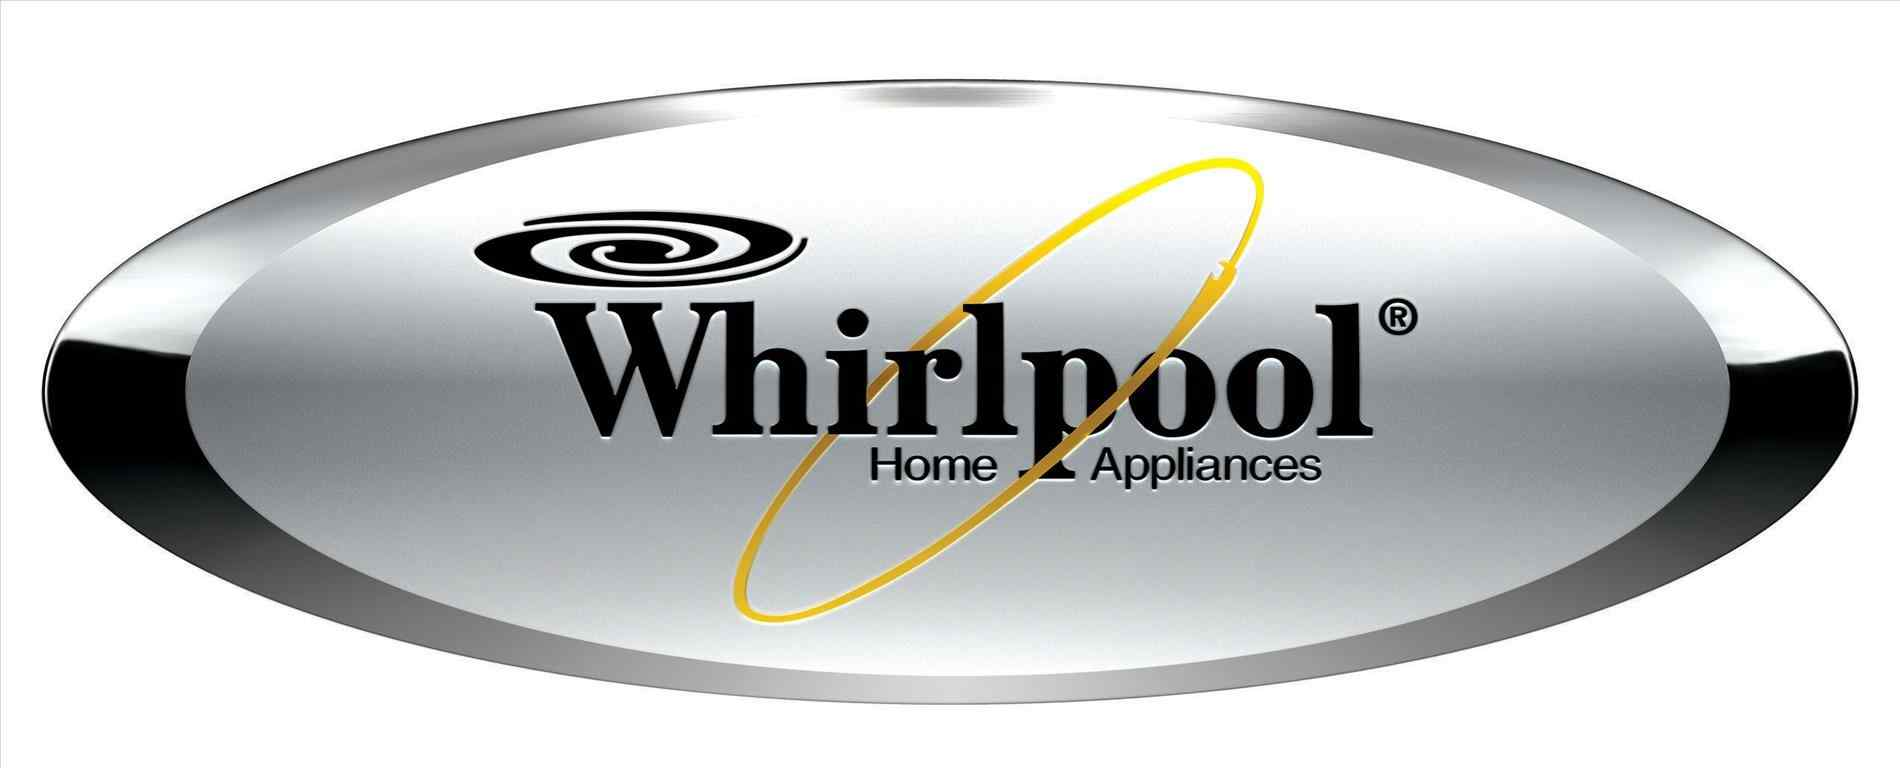 whirlpool-home-appliances-logo-parts-model-wtxewfyq-sears-partsdirect-refrigerators-dishwashers-washers-dryers-and-refrigerators-whirlpool-home-appliances-logo-dishwashers-washers-dryers